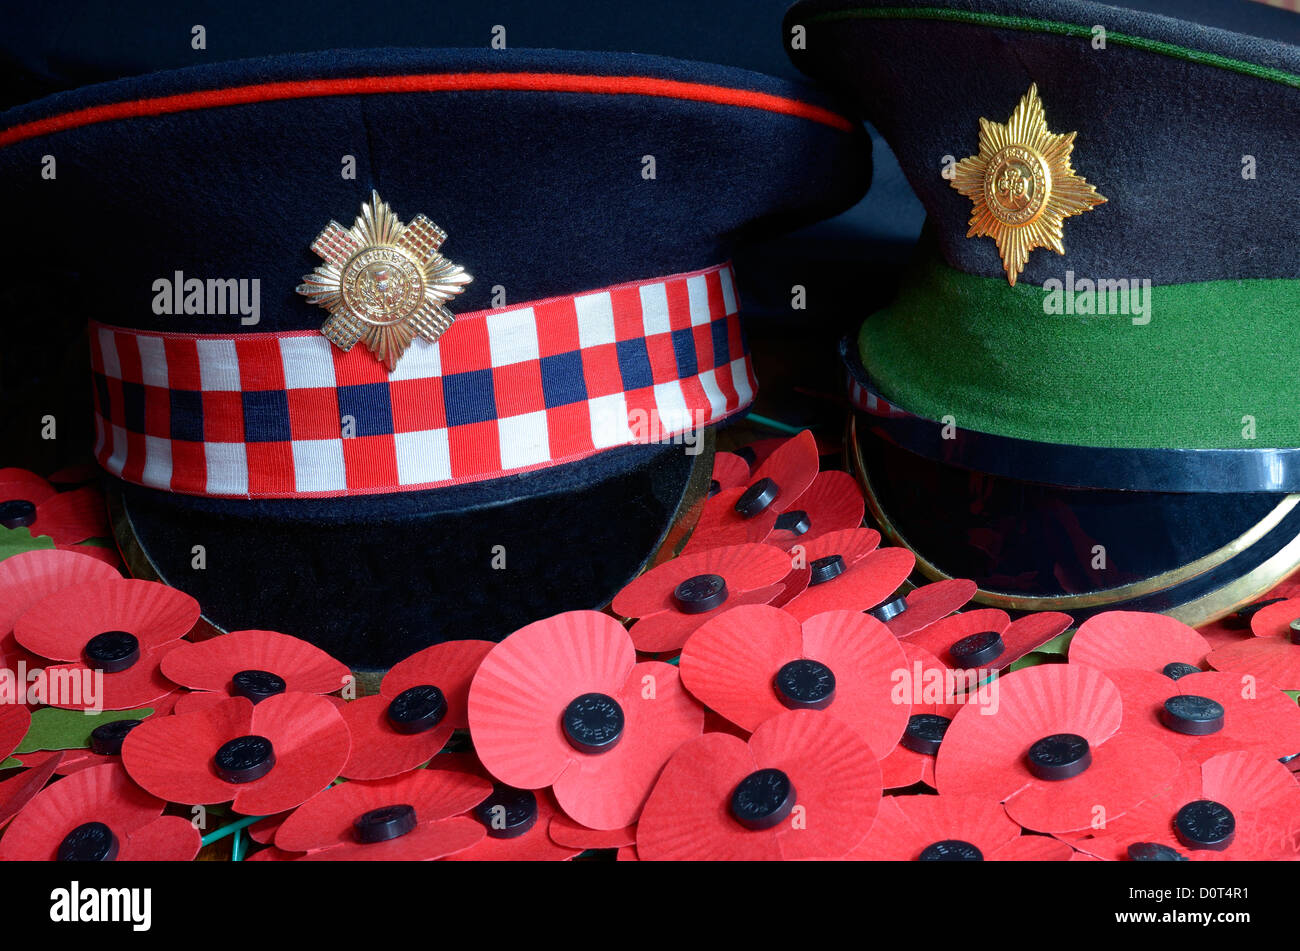 SCOTS GUARDS AND IRISH GUARDS DRESS CAPS IN A SEA OF REMEMBRANCE POPPIES - Stock Image